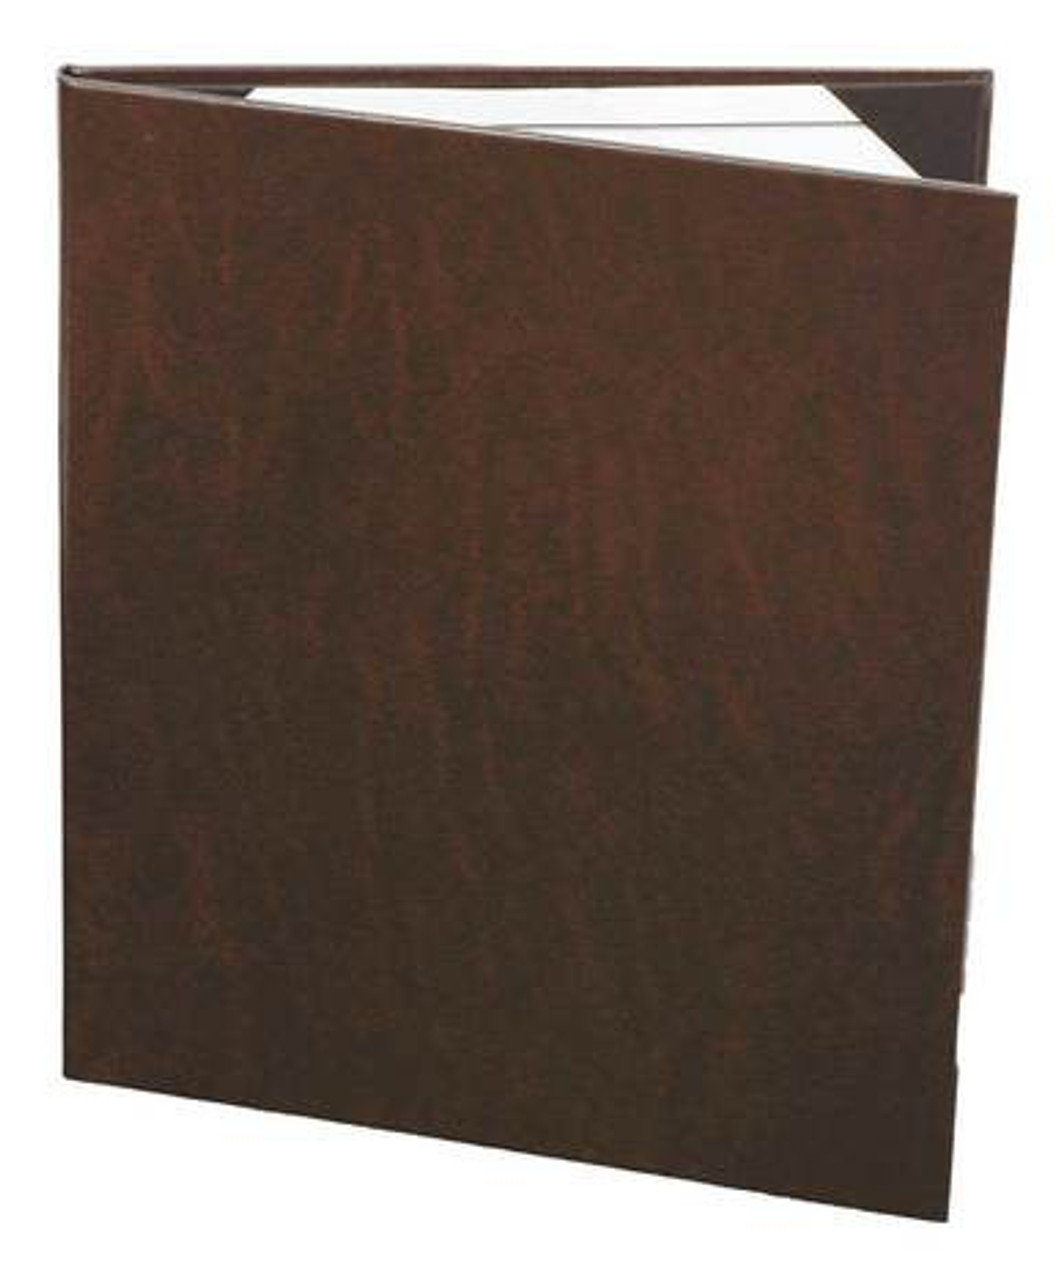 """(10pk) Menu Covers, 2 panel, 8.5"""" x 11"""", Brown Bonded Leather"""